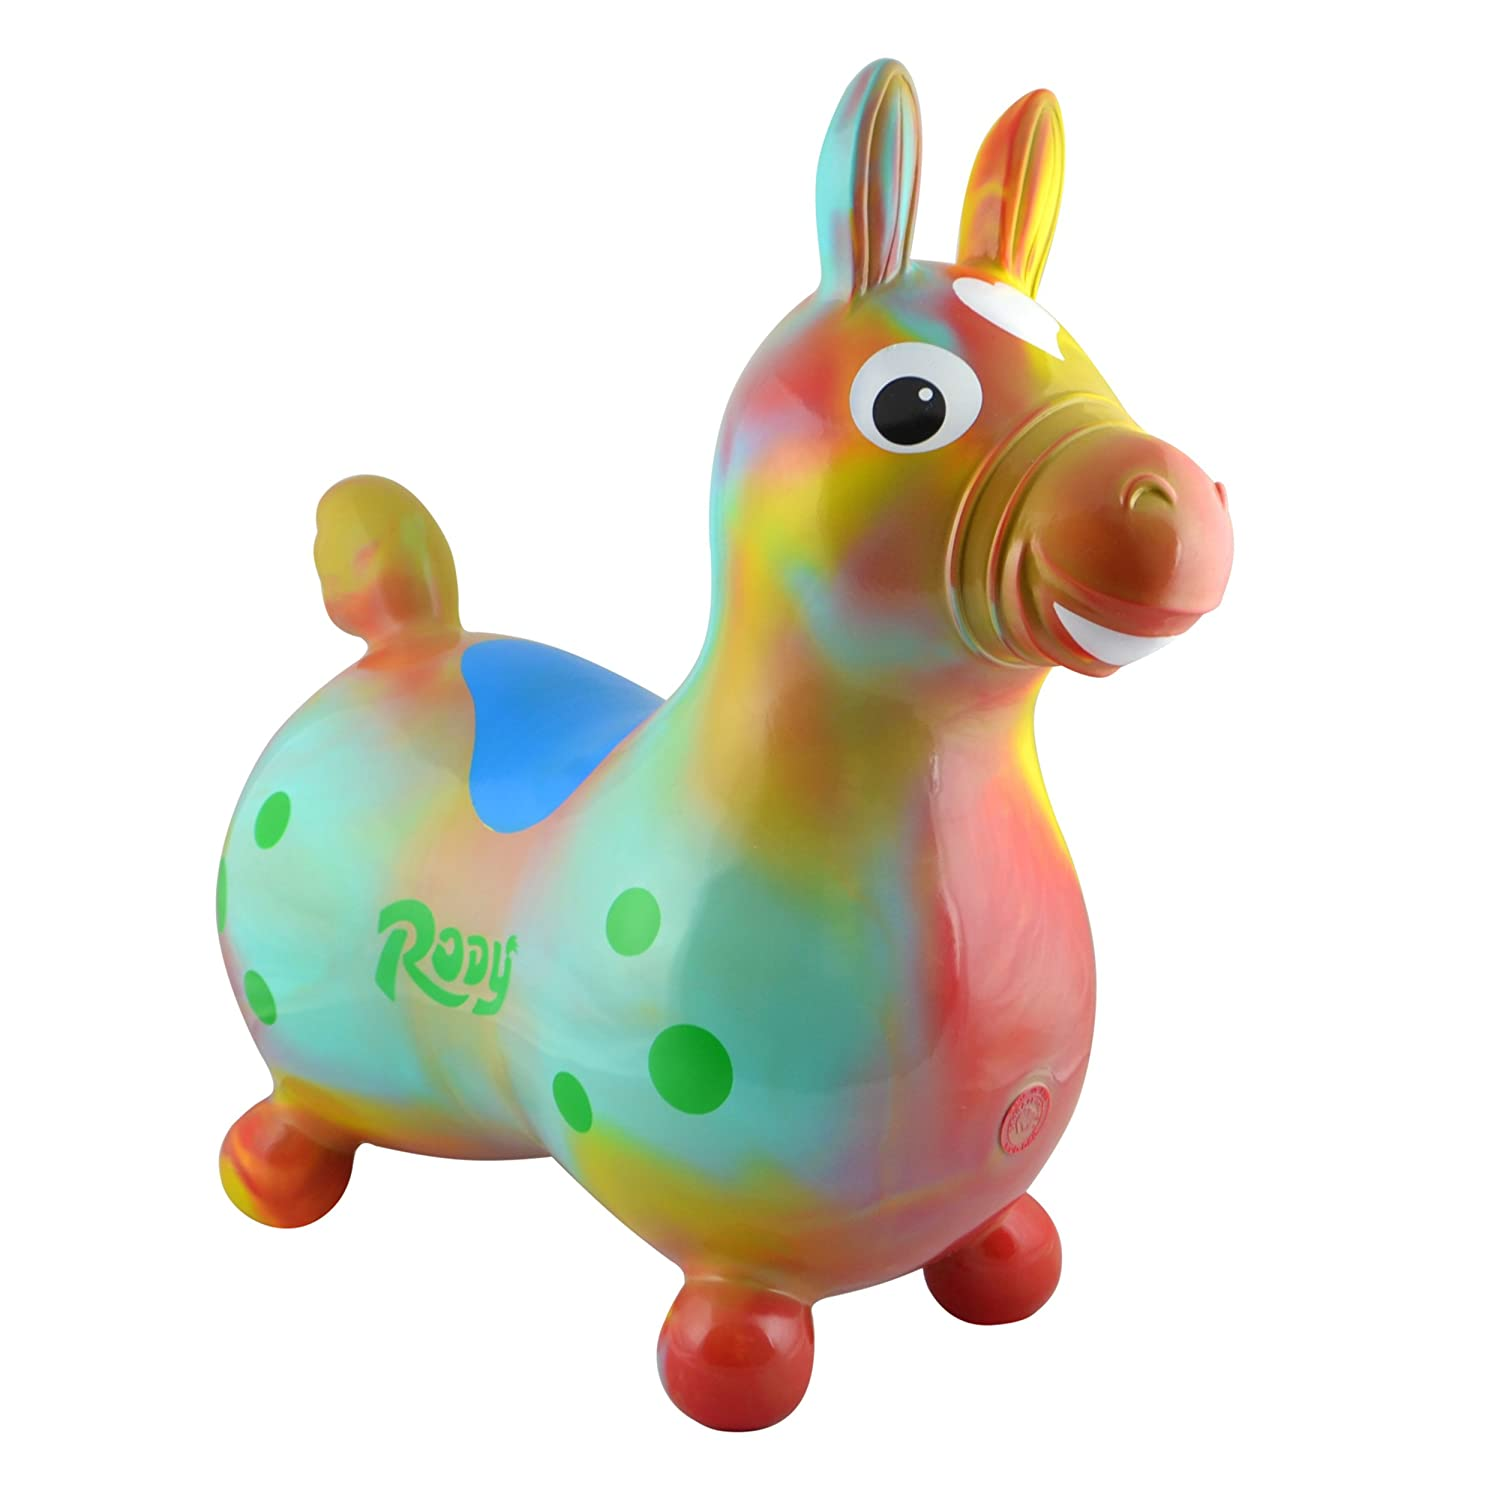 Gymnic / Rody Inflatable Hopping Horse, Blue 7013